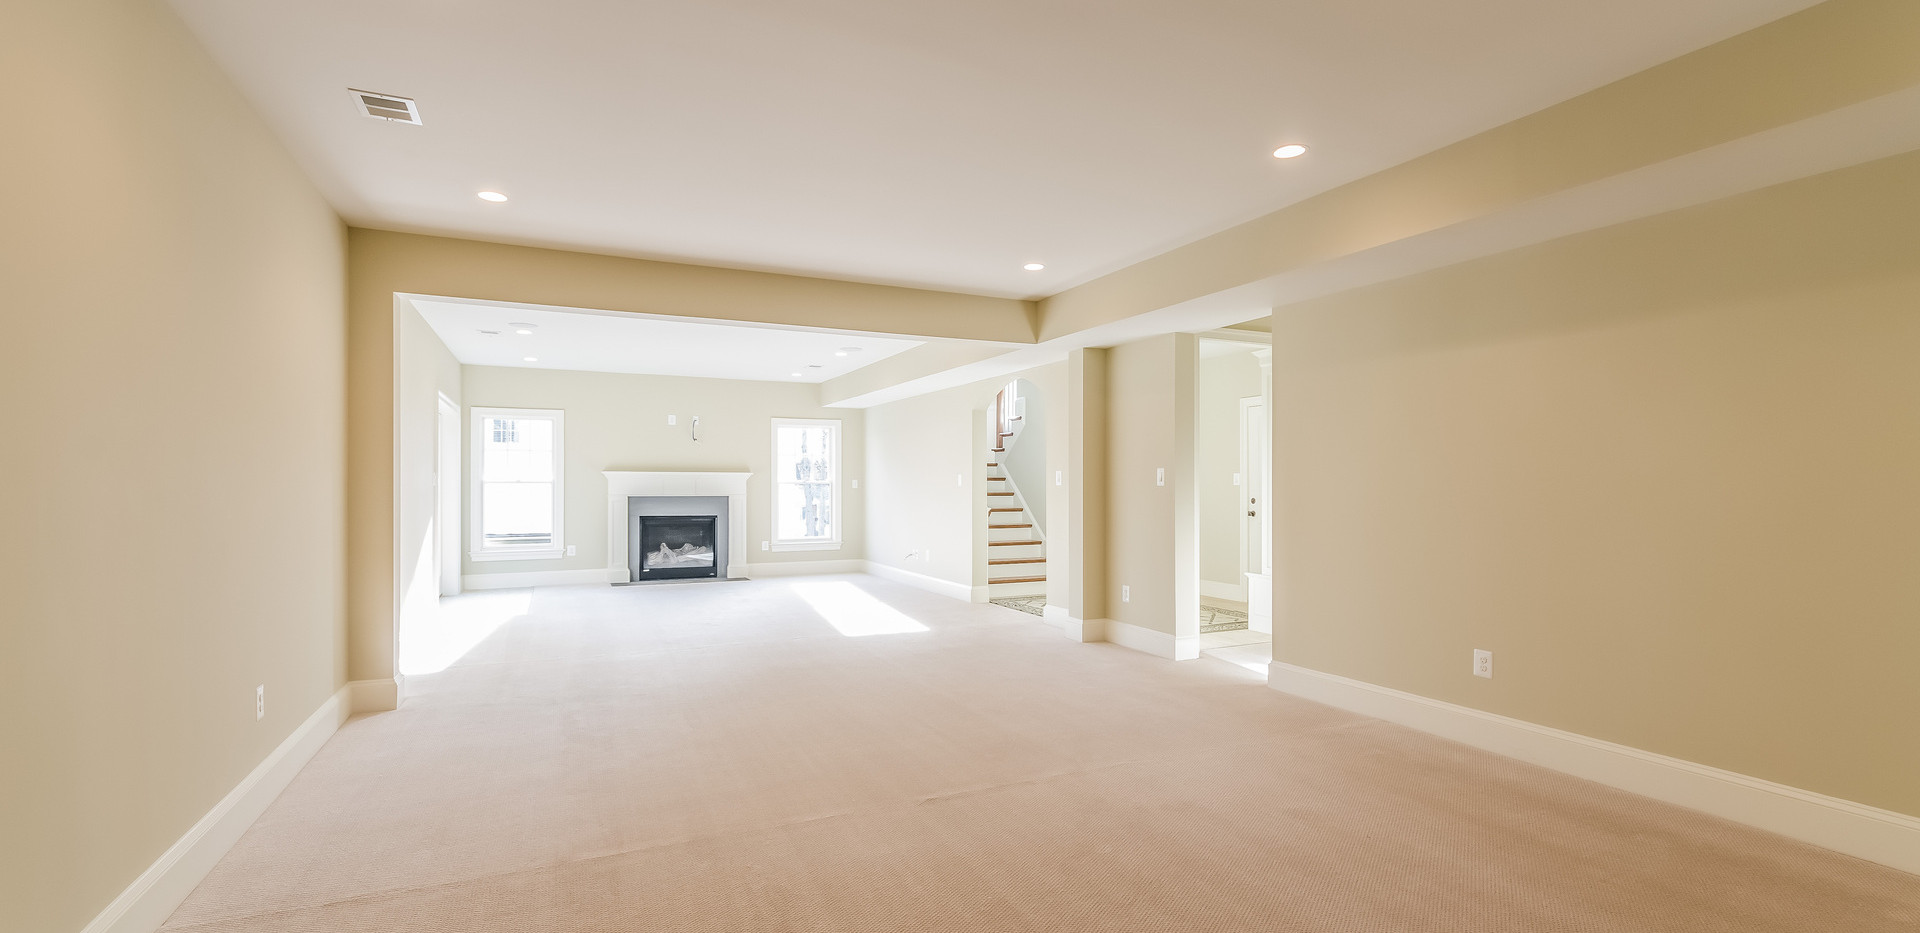 Basment Rec Room with gas fireplace and backyard walk-out